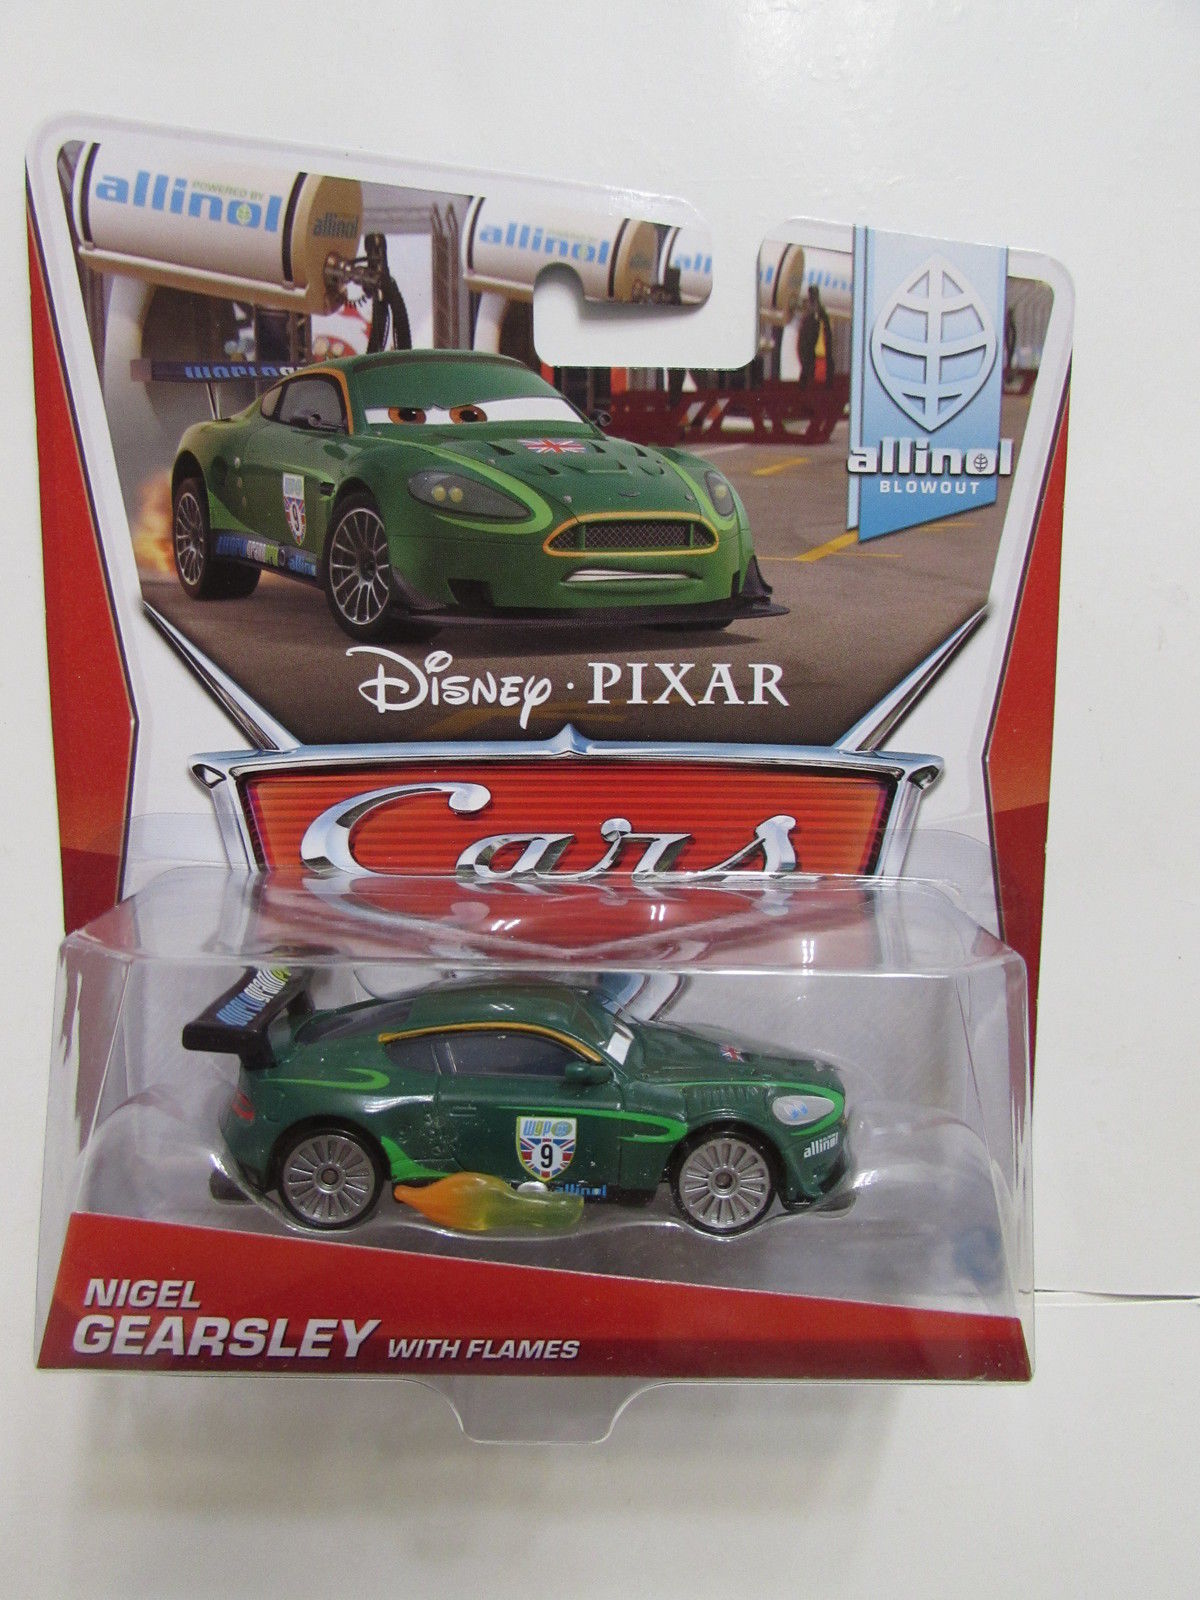 DISNEY PIXAR CARS ALLINOL BLOWOUT NIGEL GEARSLEY WITH FLAMES